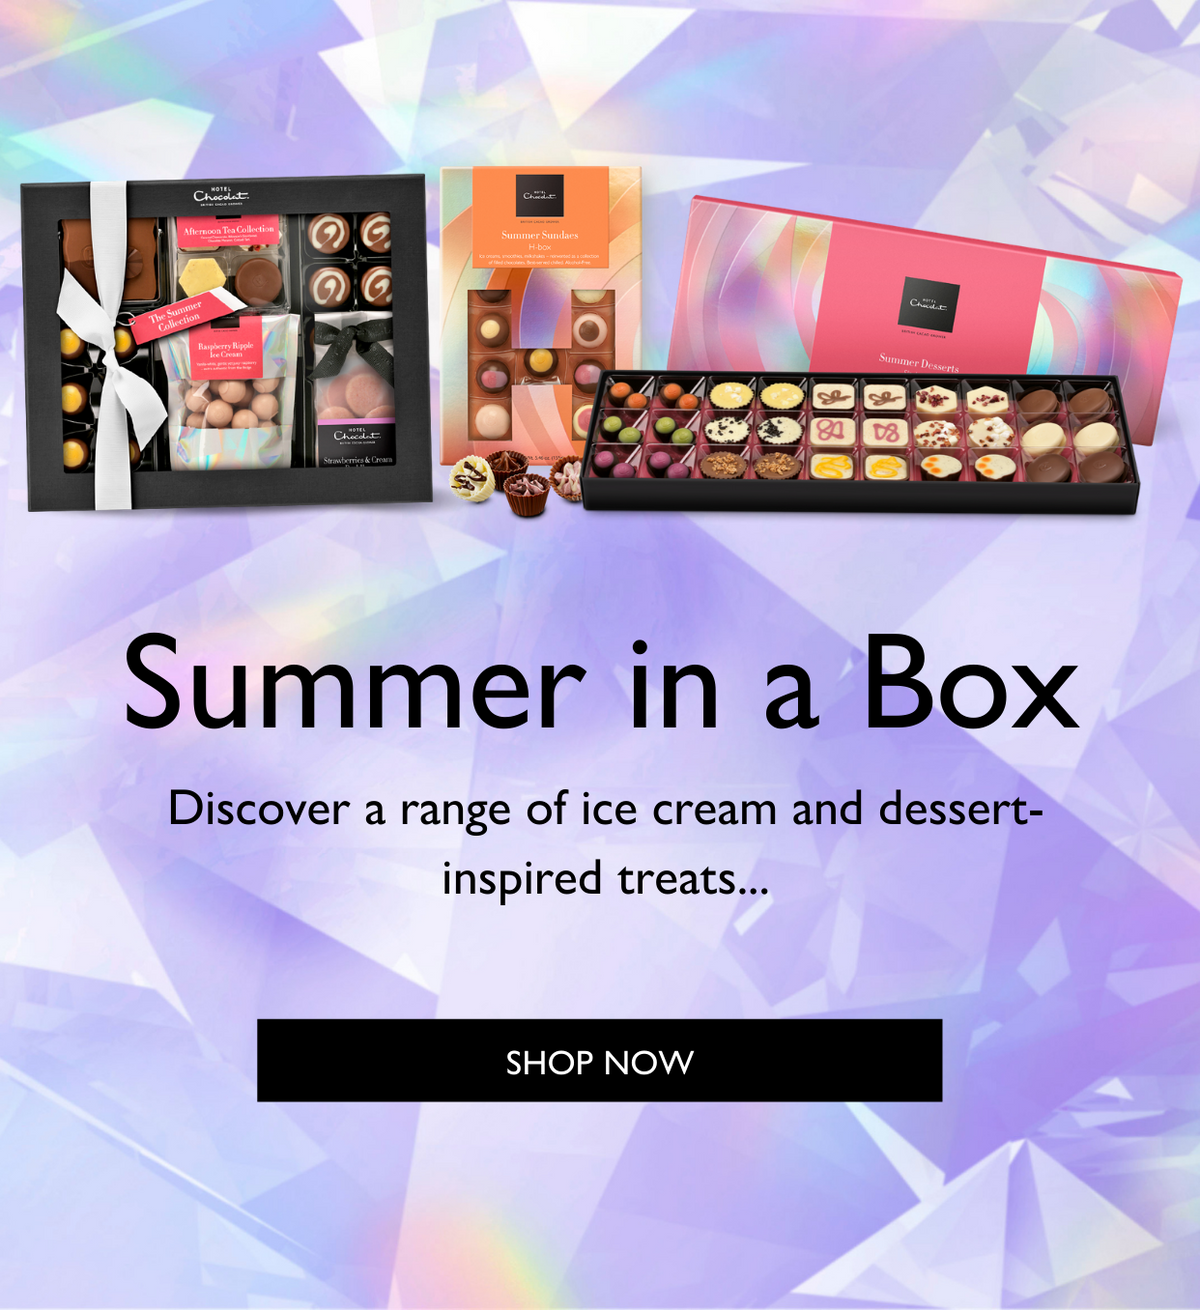 Summer in a box. Discover a range of ice cream and dessert-inspired treats...